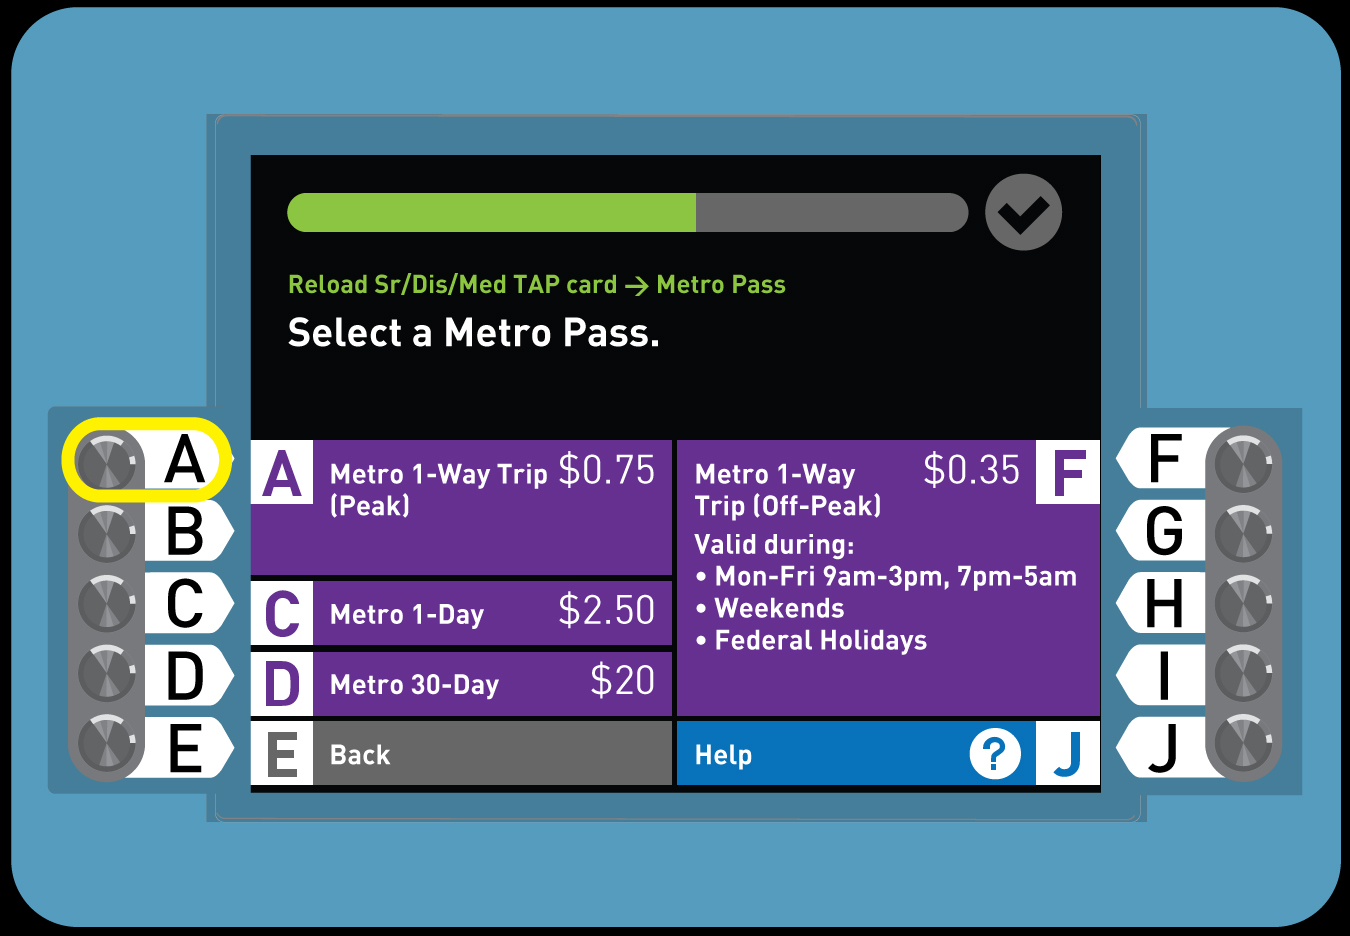 5. How to Load Senior TAP card with 1-Way Fare